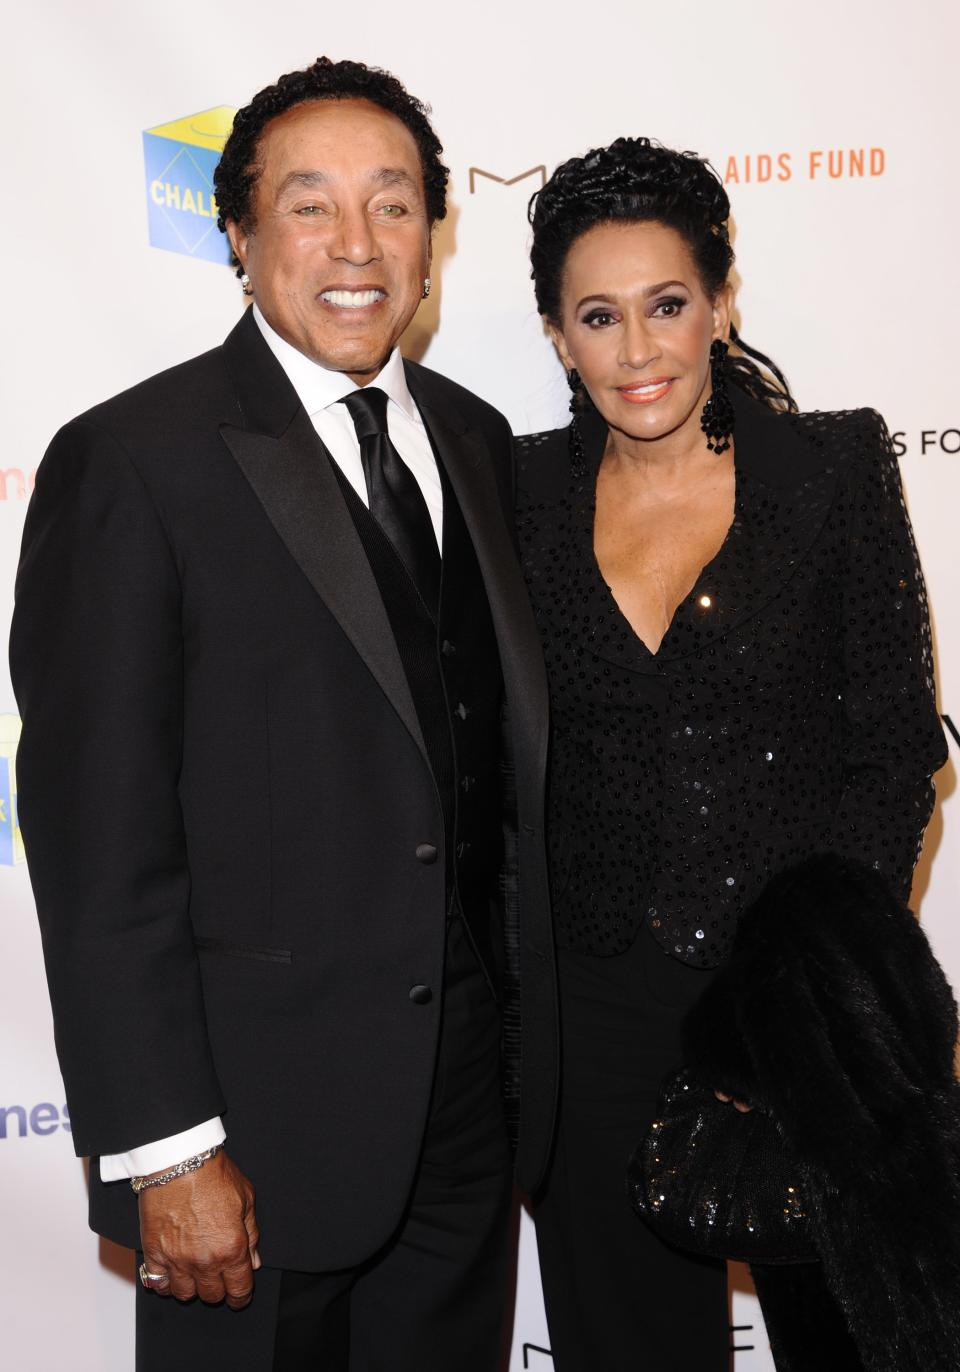 Singer Smokey Robinson and Claudette Robinson attend the Elton John AIDS Foundation 10th Annual Enduring Vision Benefit, on Wednesday, Oct. 26, 2011, in New York. (AP Photo/Peter Kramer)